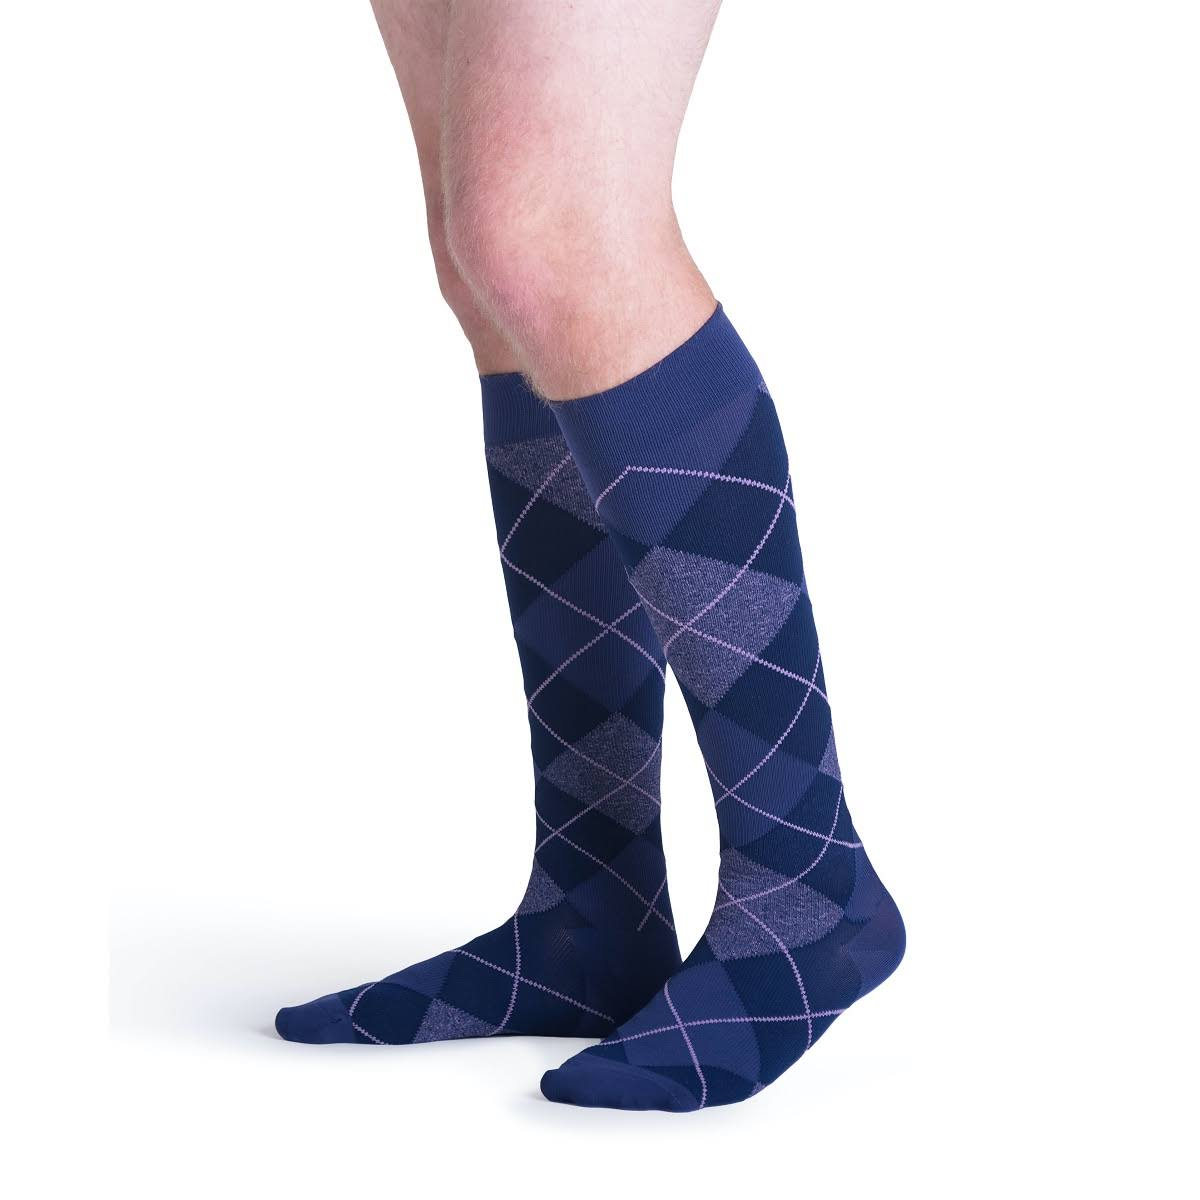 Sigvaris Microfiber Shades Men's 15-20 mmHg Knee High B / Purple Argyle